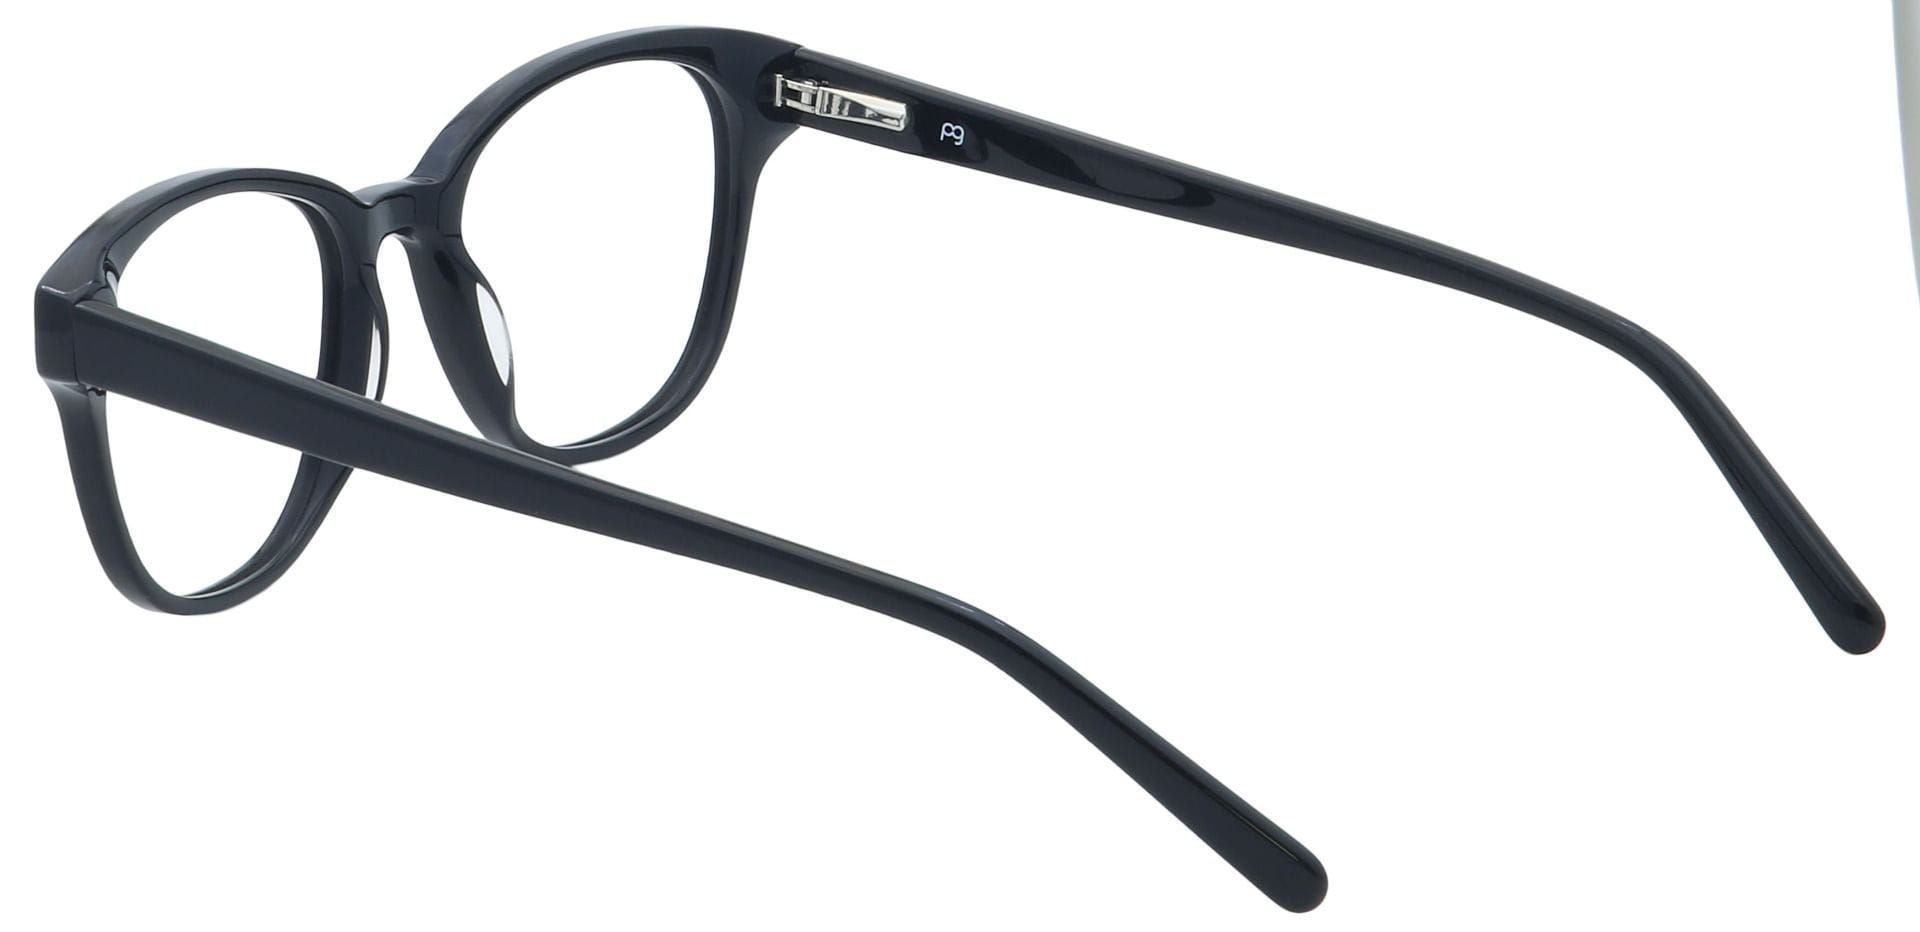 Pinnacle Classic Square Prescription Glasses - Black